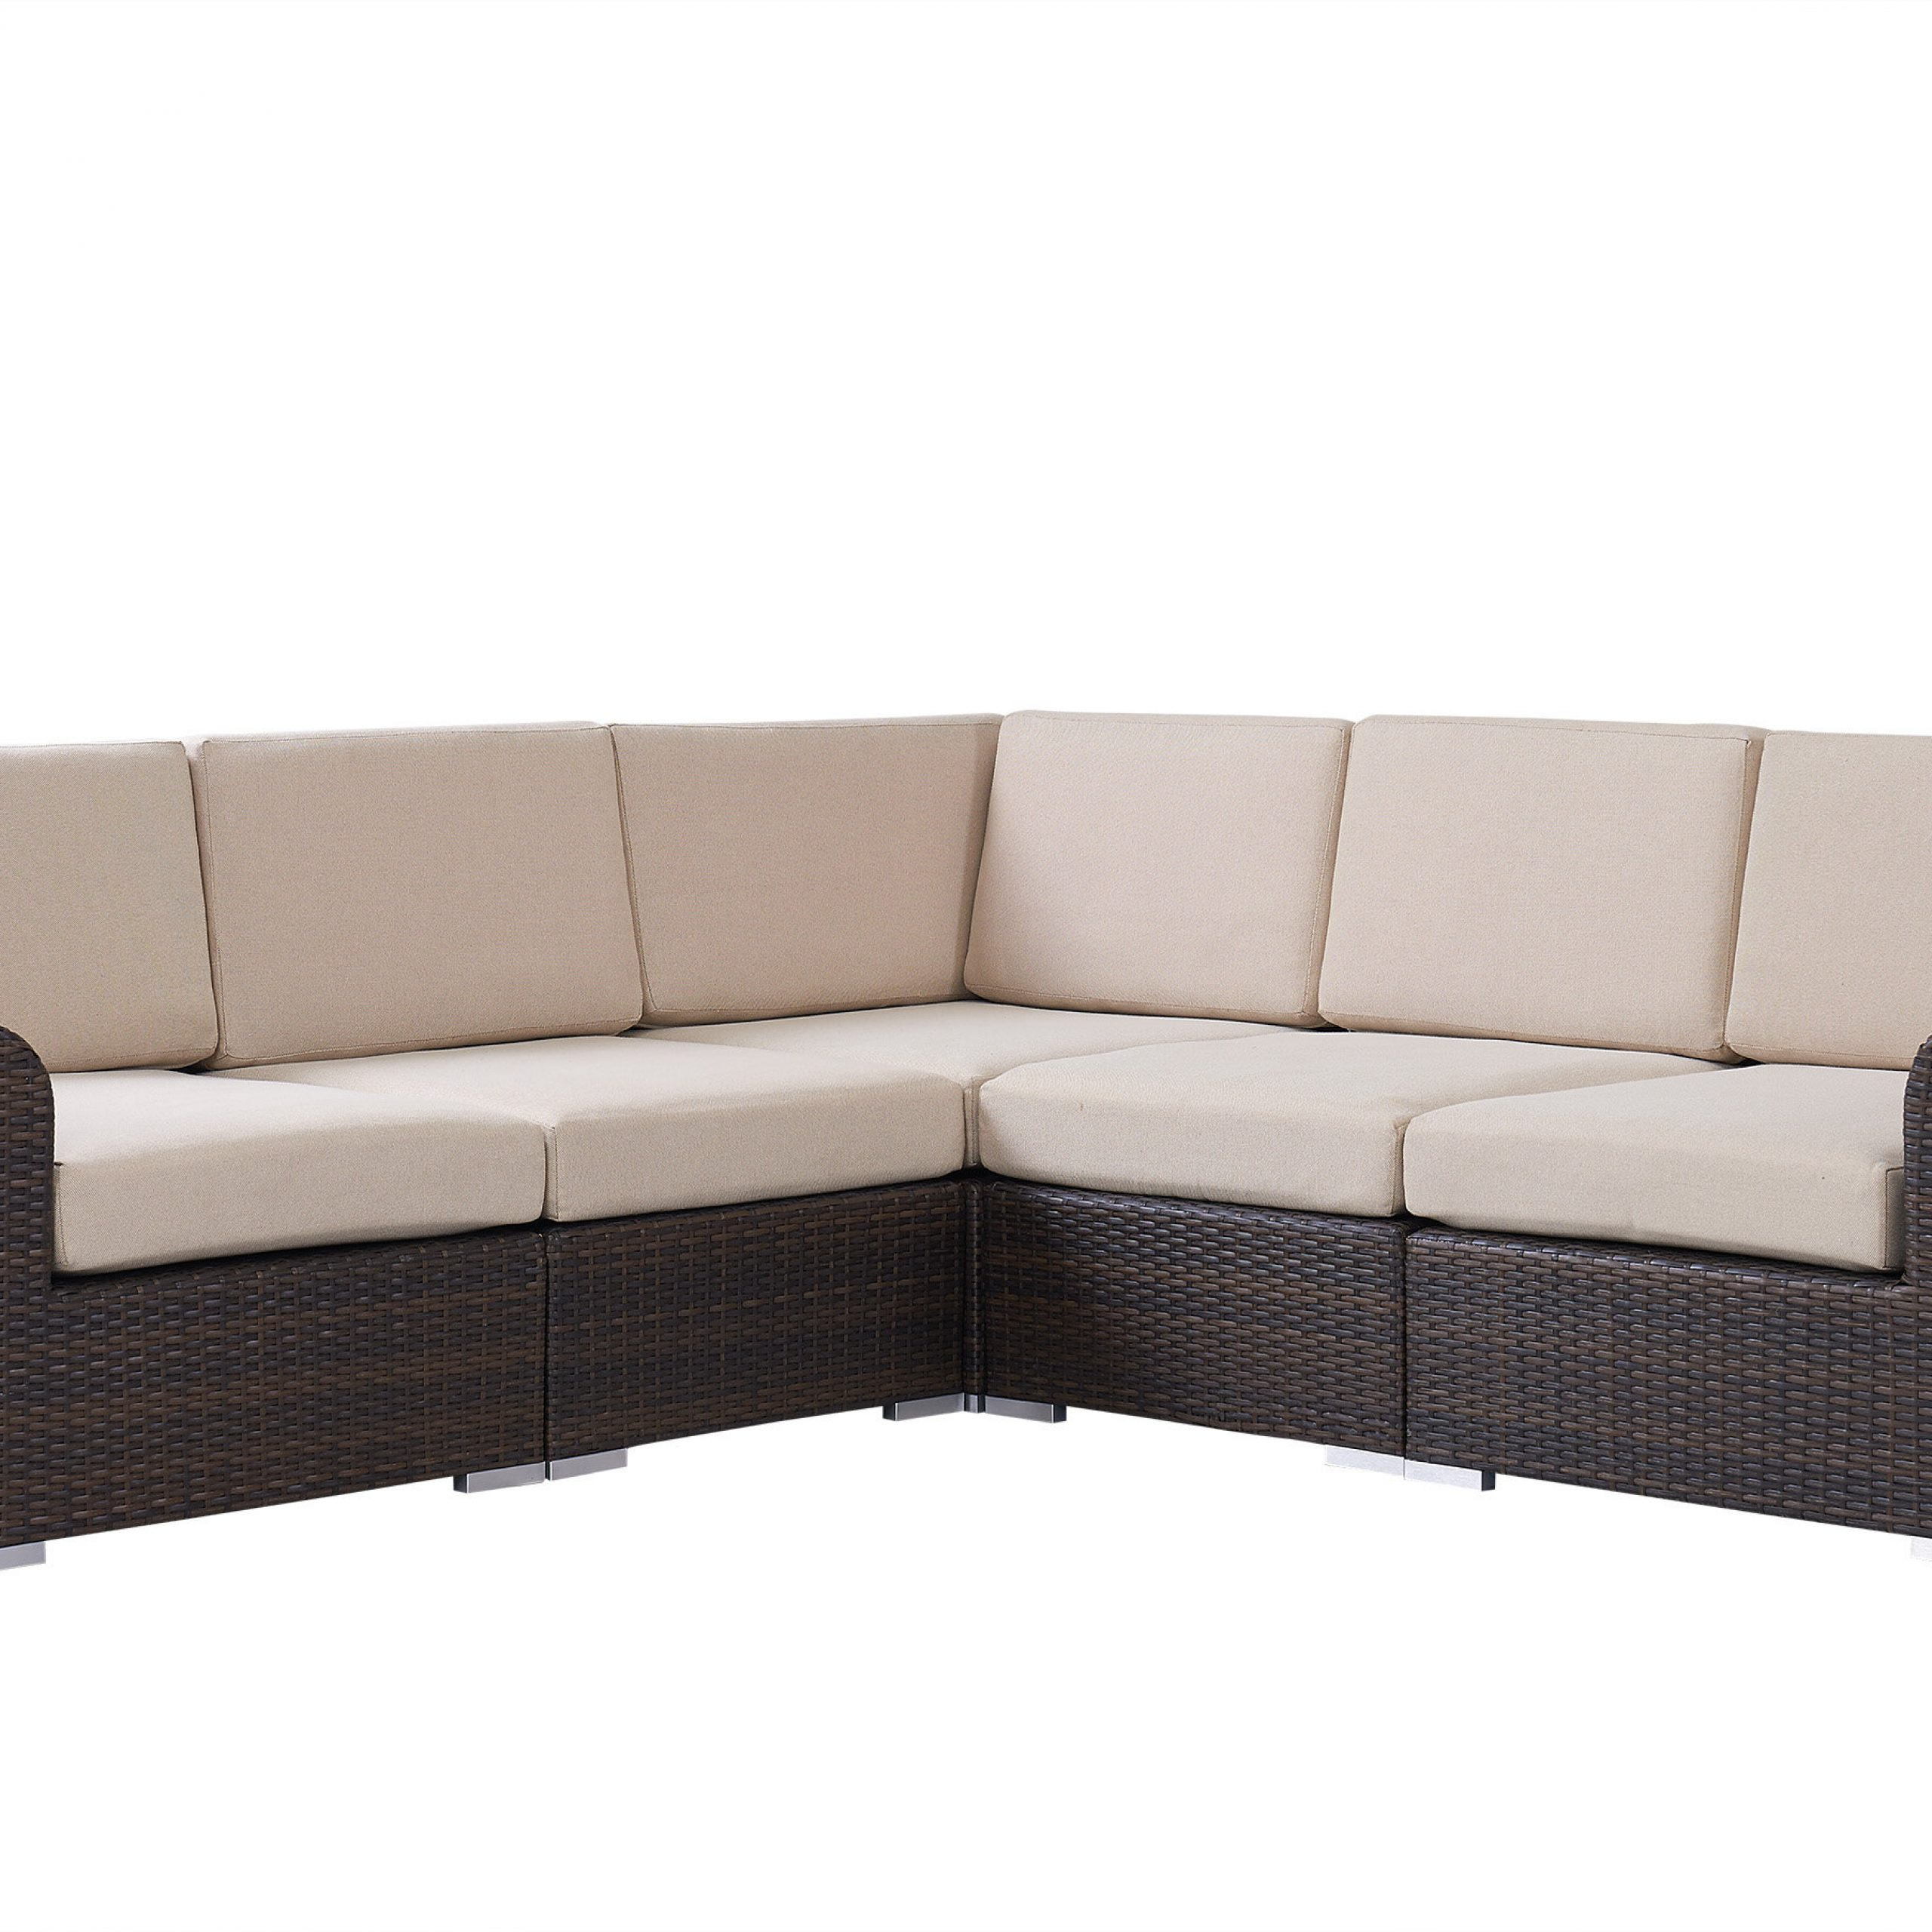 Letona Patio Sectionals With Cushions Inside Recent Brookhaven Patio Sectional With Cushions (View 8 of 25)